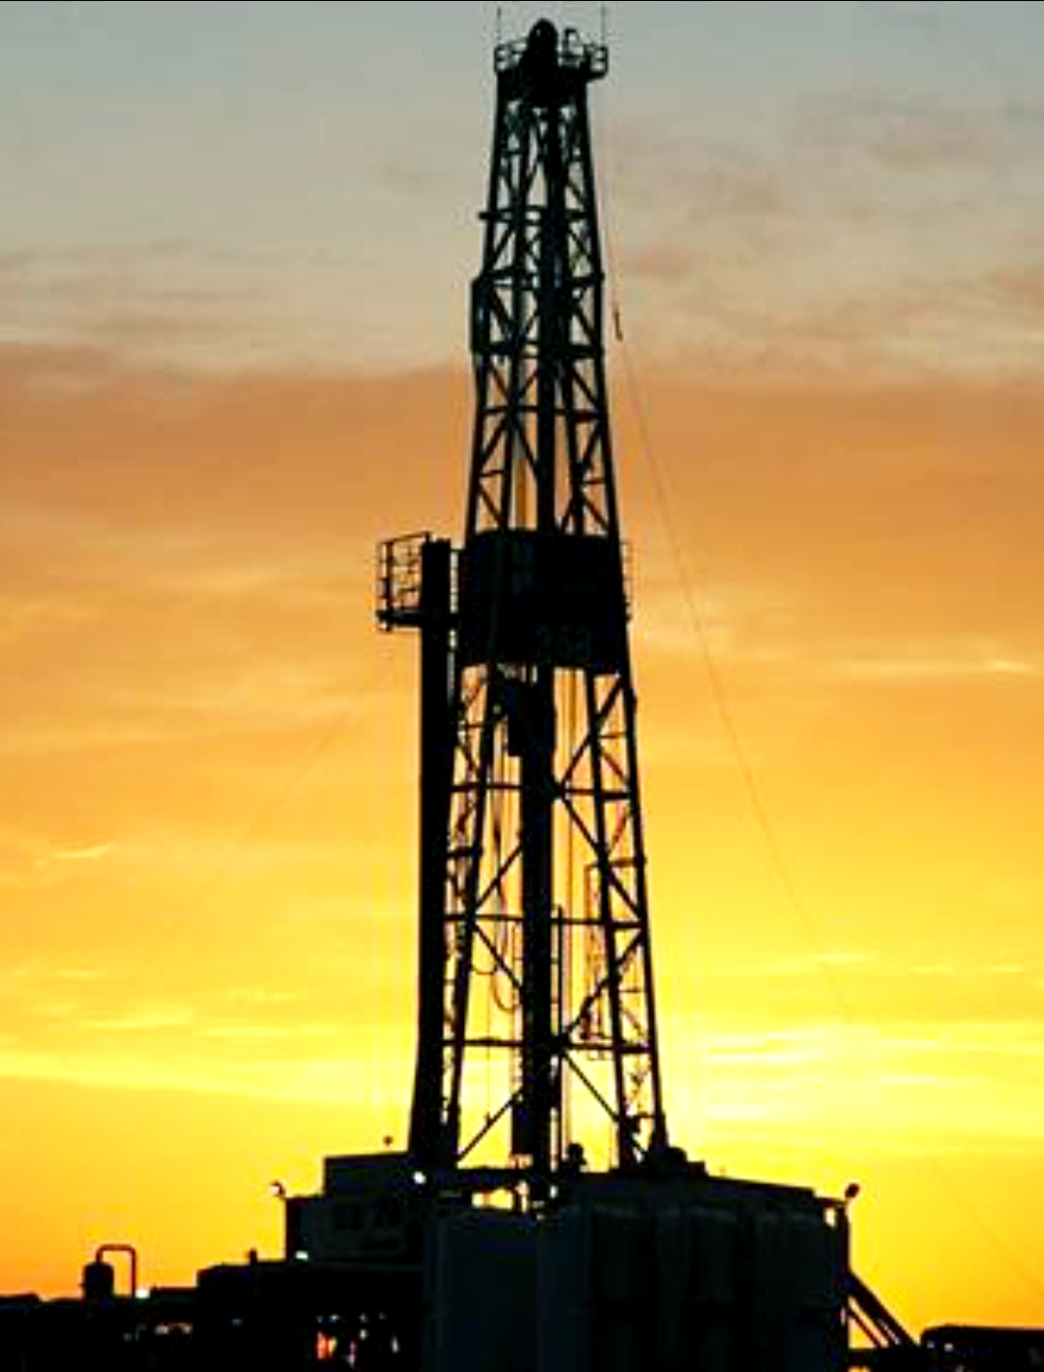 Oil & Gas Drilling Rig Image With The Sun Rising In The Background